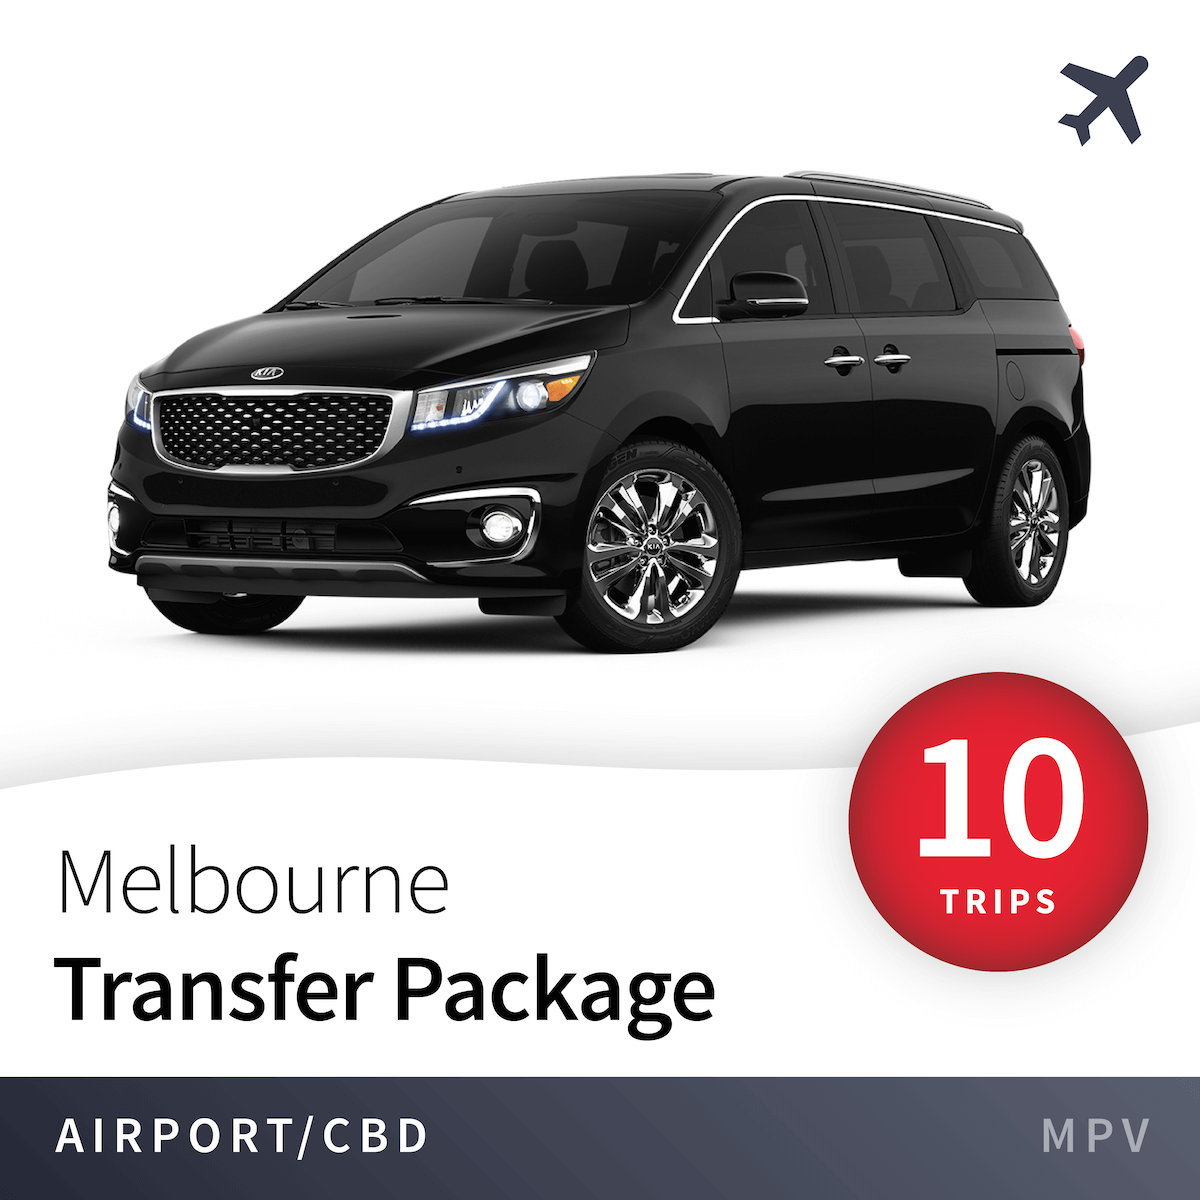 Melbourne Airport Transfer Package - MPV (10 Trips) 7